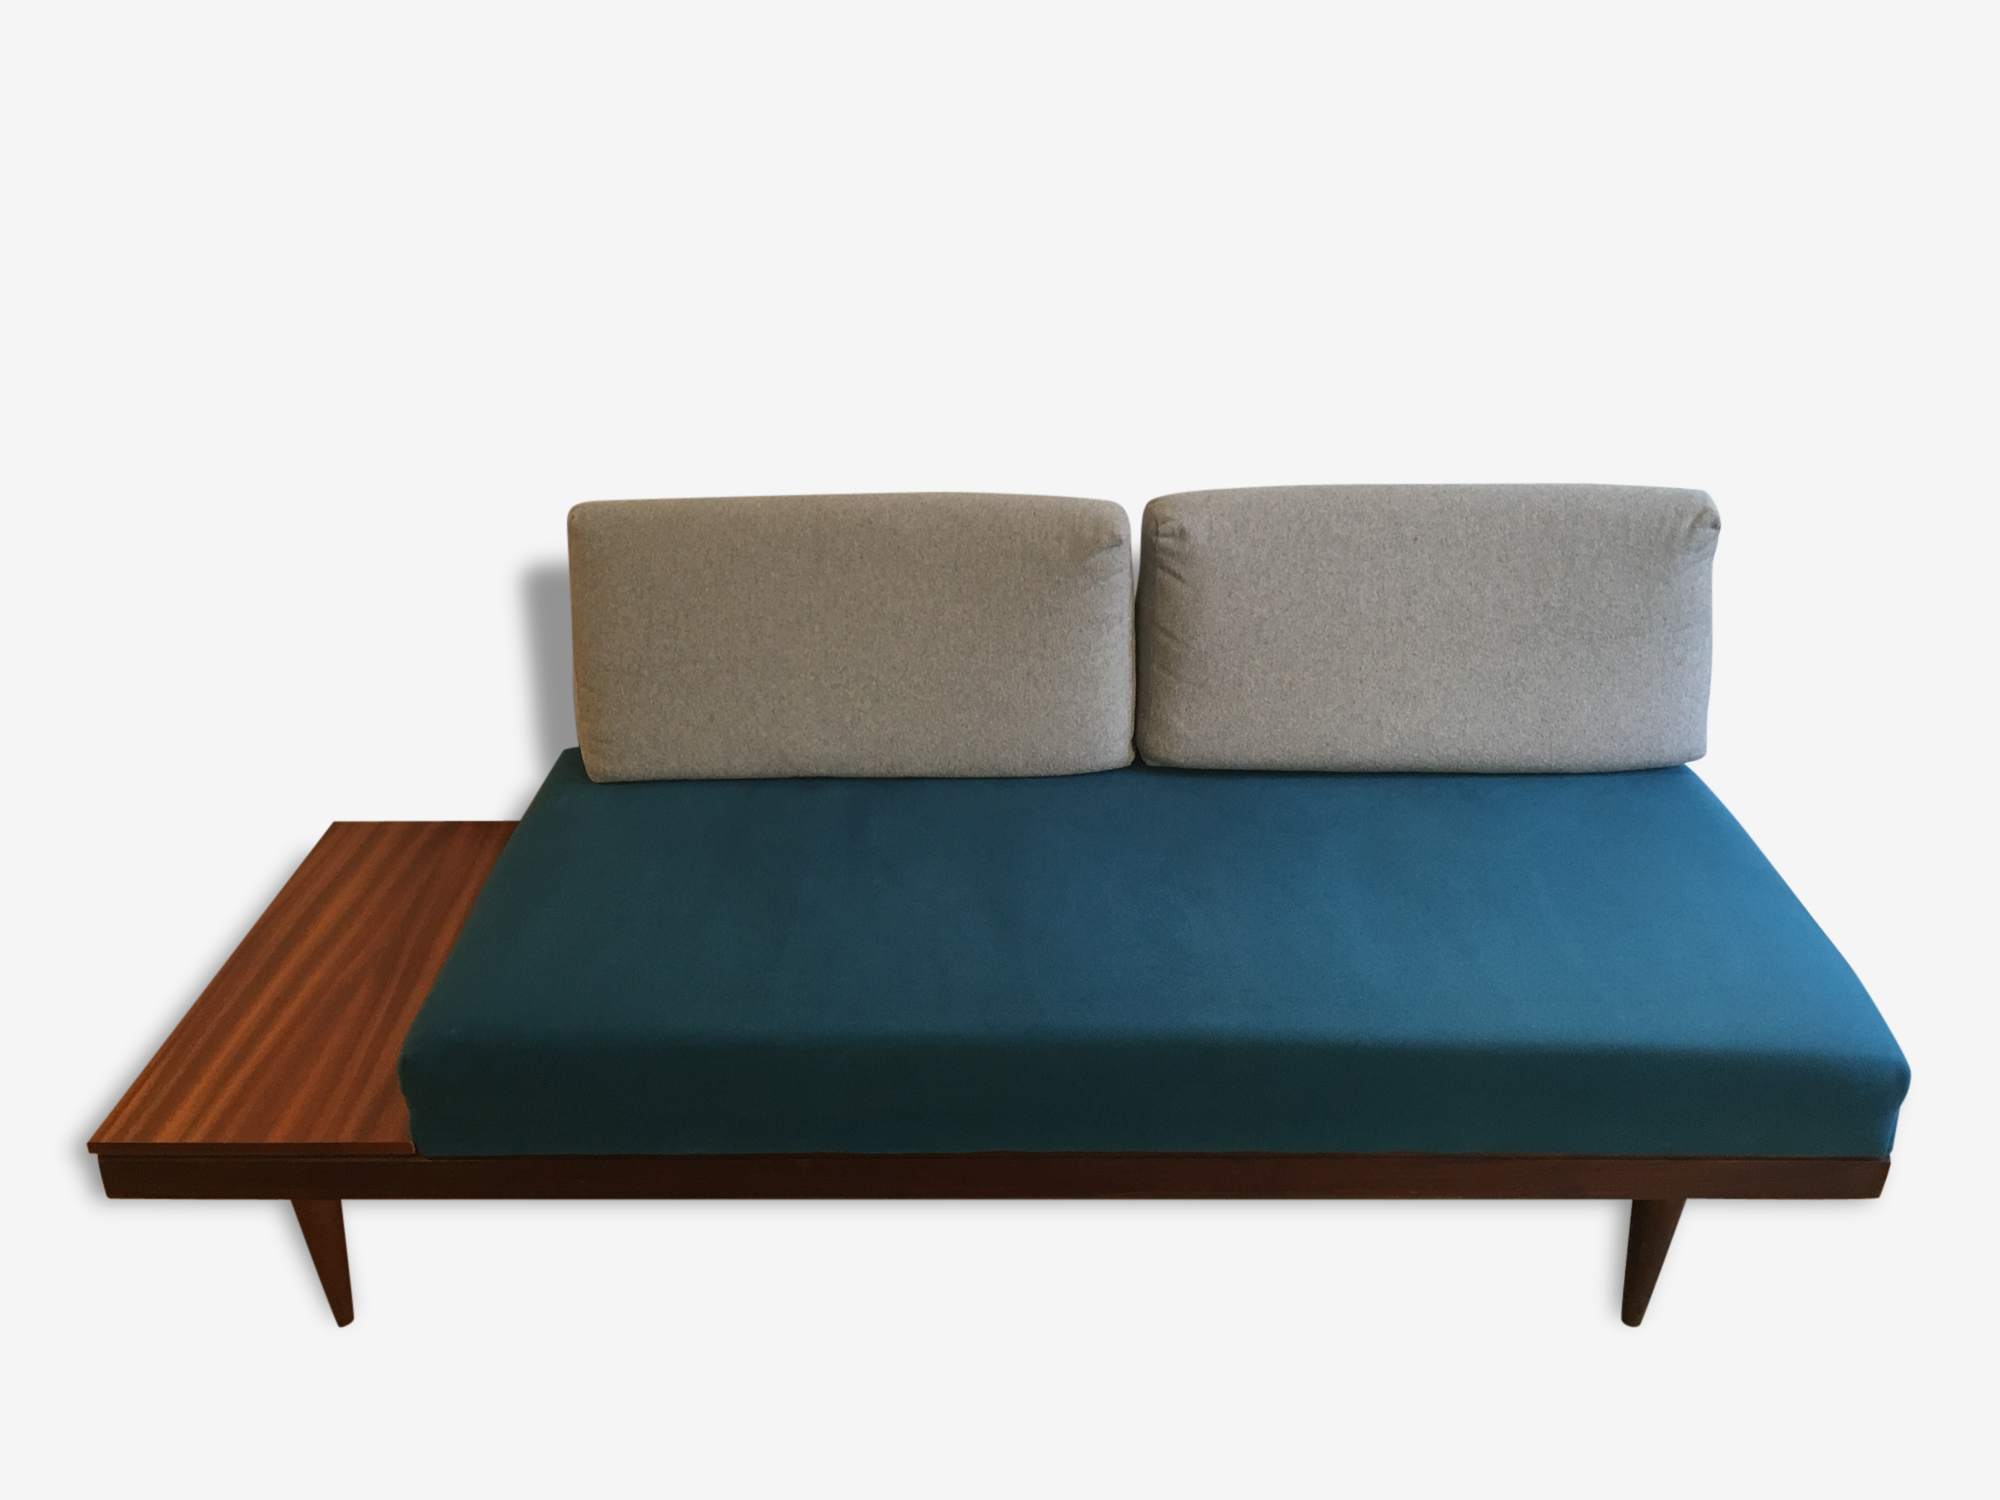 Daybed Scandinave canapé daybed scandinave vintage convertible lit 1 place - bois